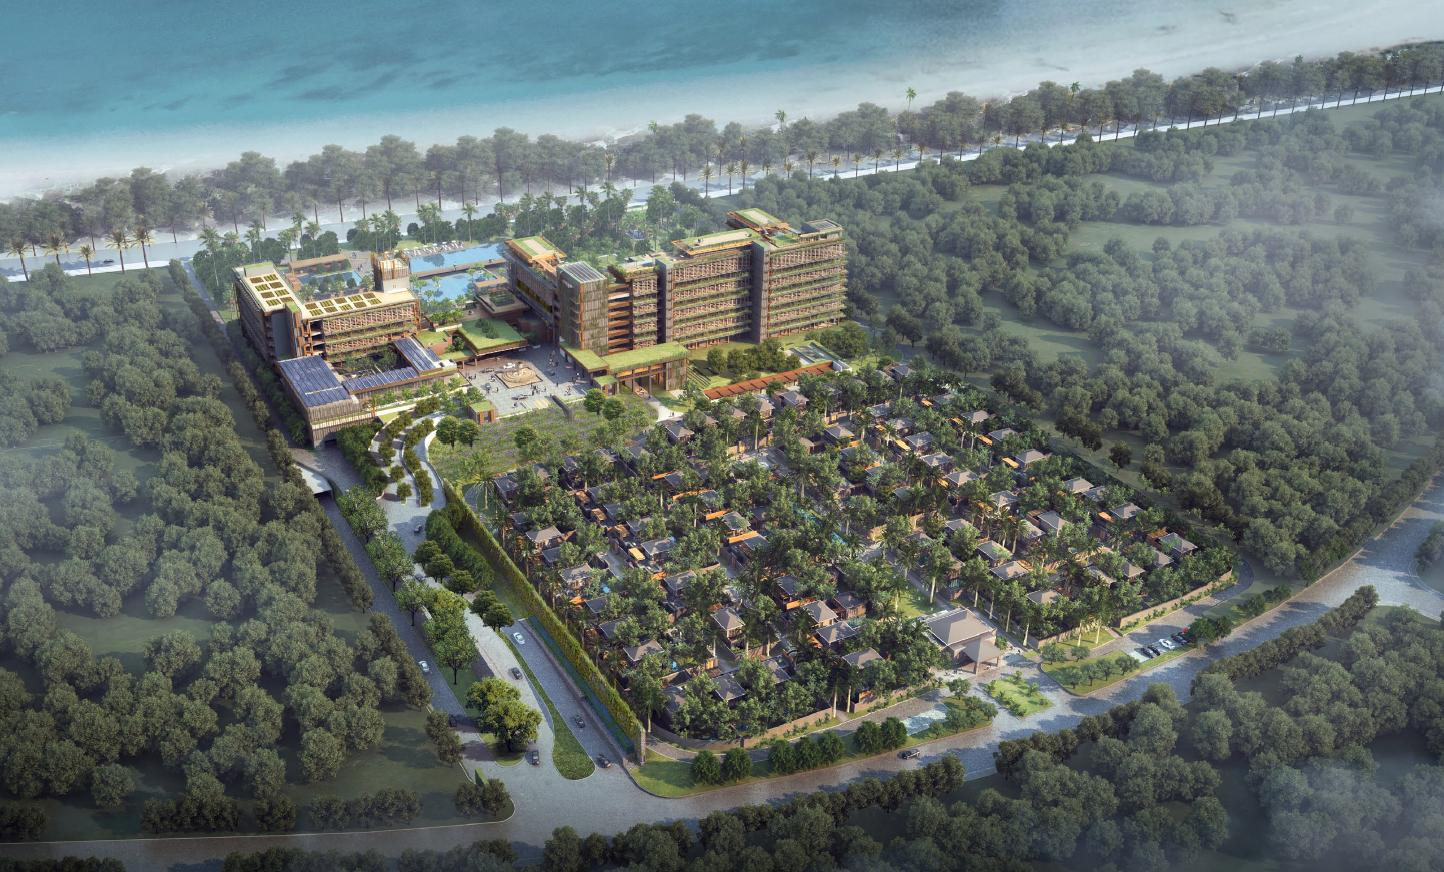 The 280-bedroom hotel is the first for the brand in China, and will open in Sanya in 2018